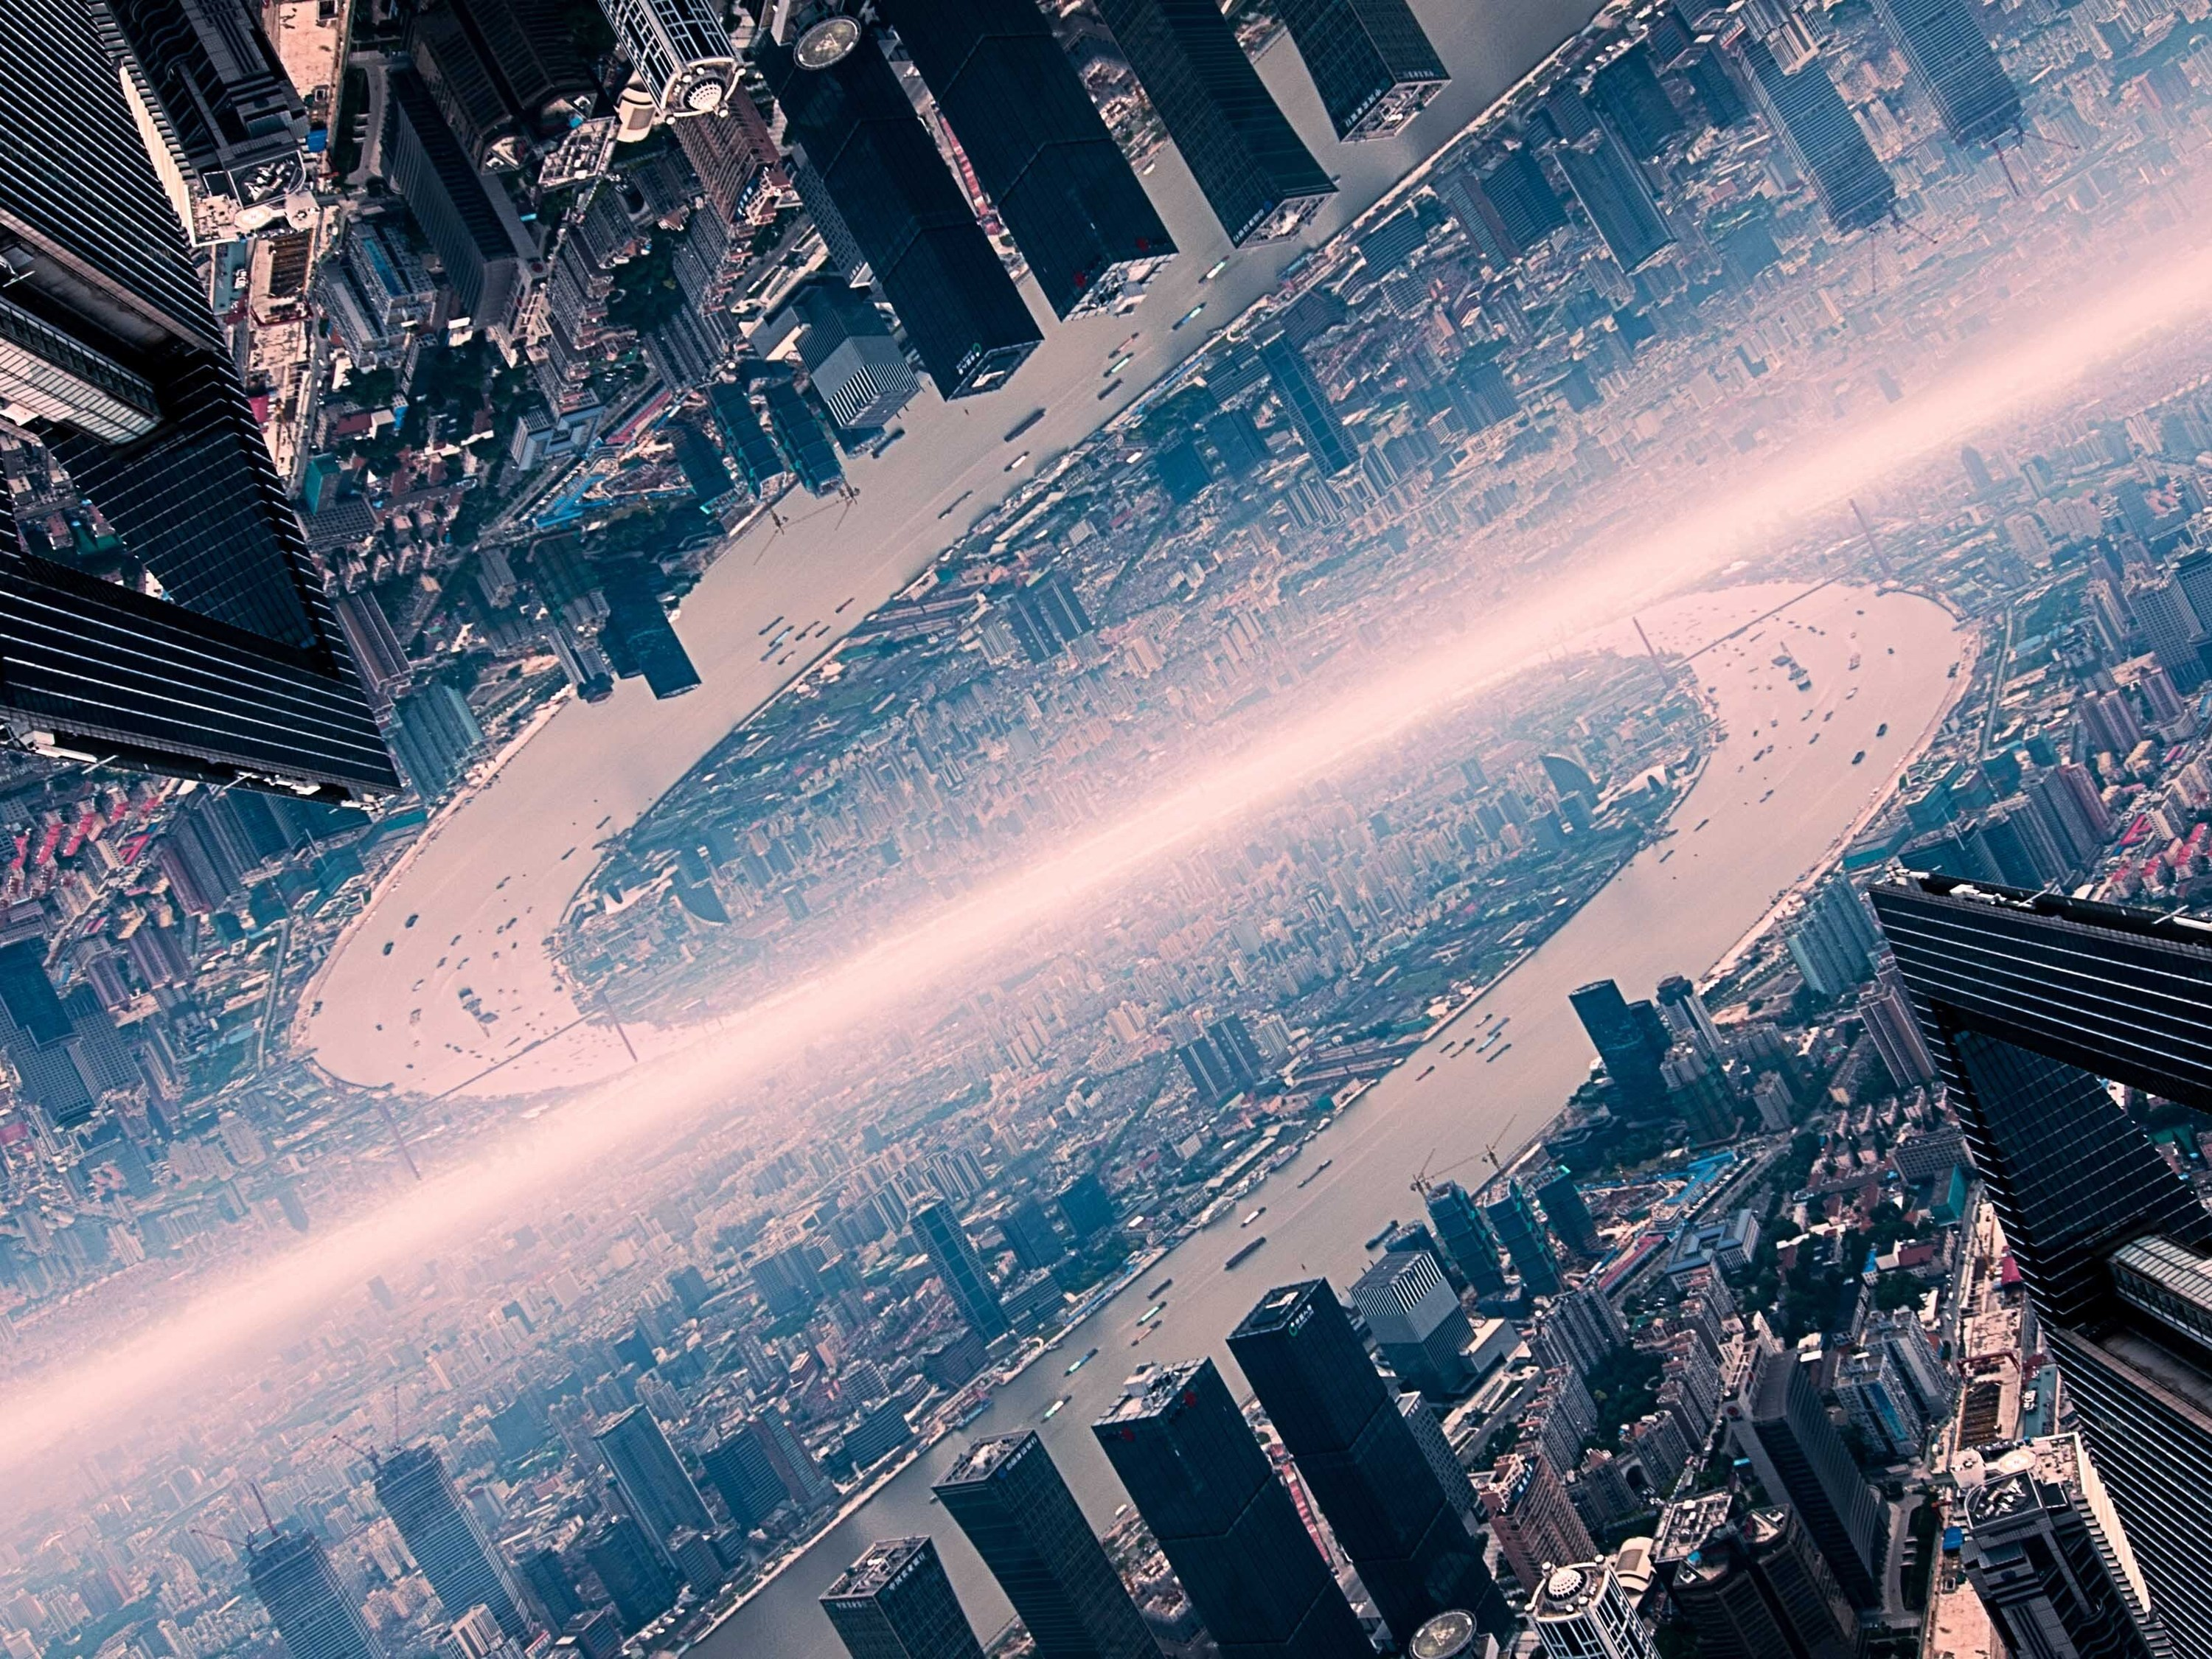 Believe it or not, researchers found evidence of a parallel universe